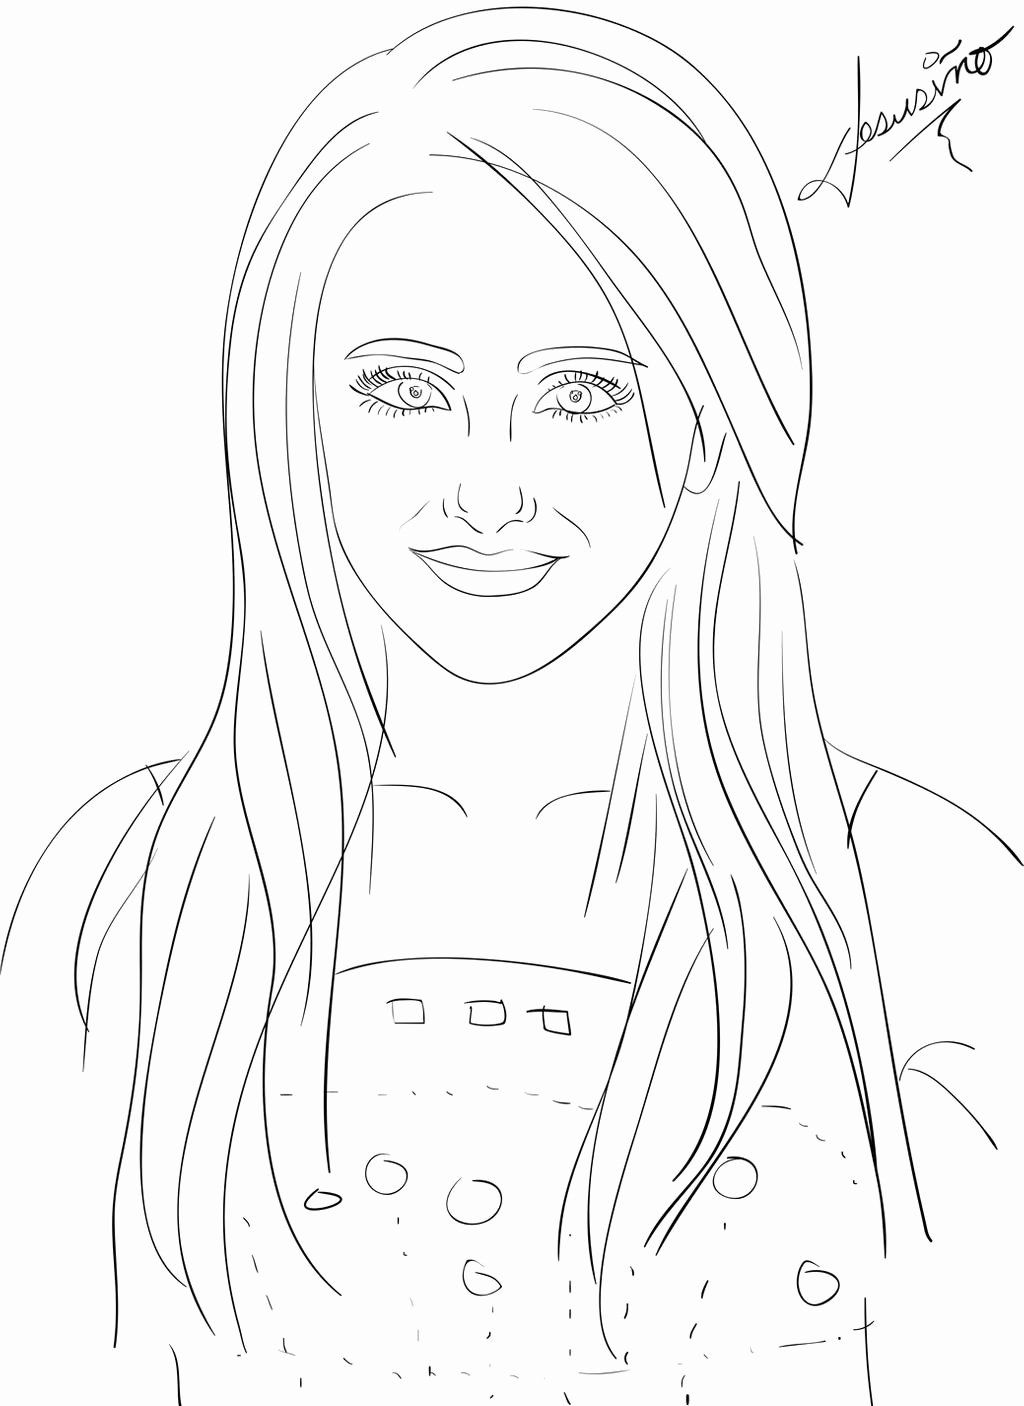 Ariana Grande Coloring Pages Designs Collections